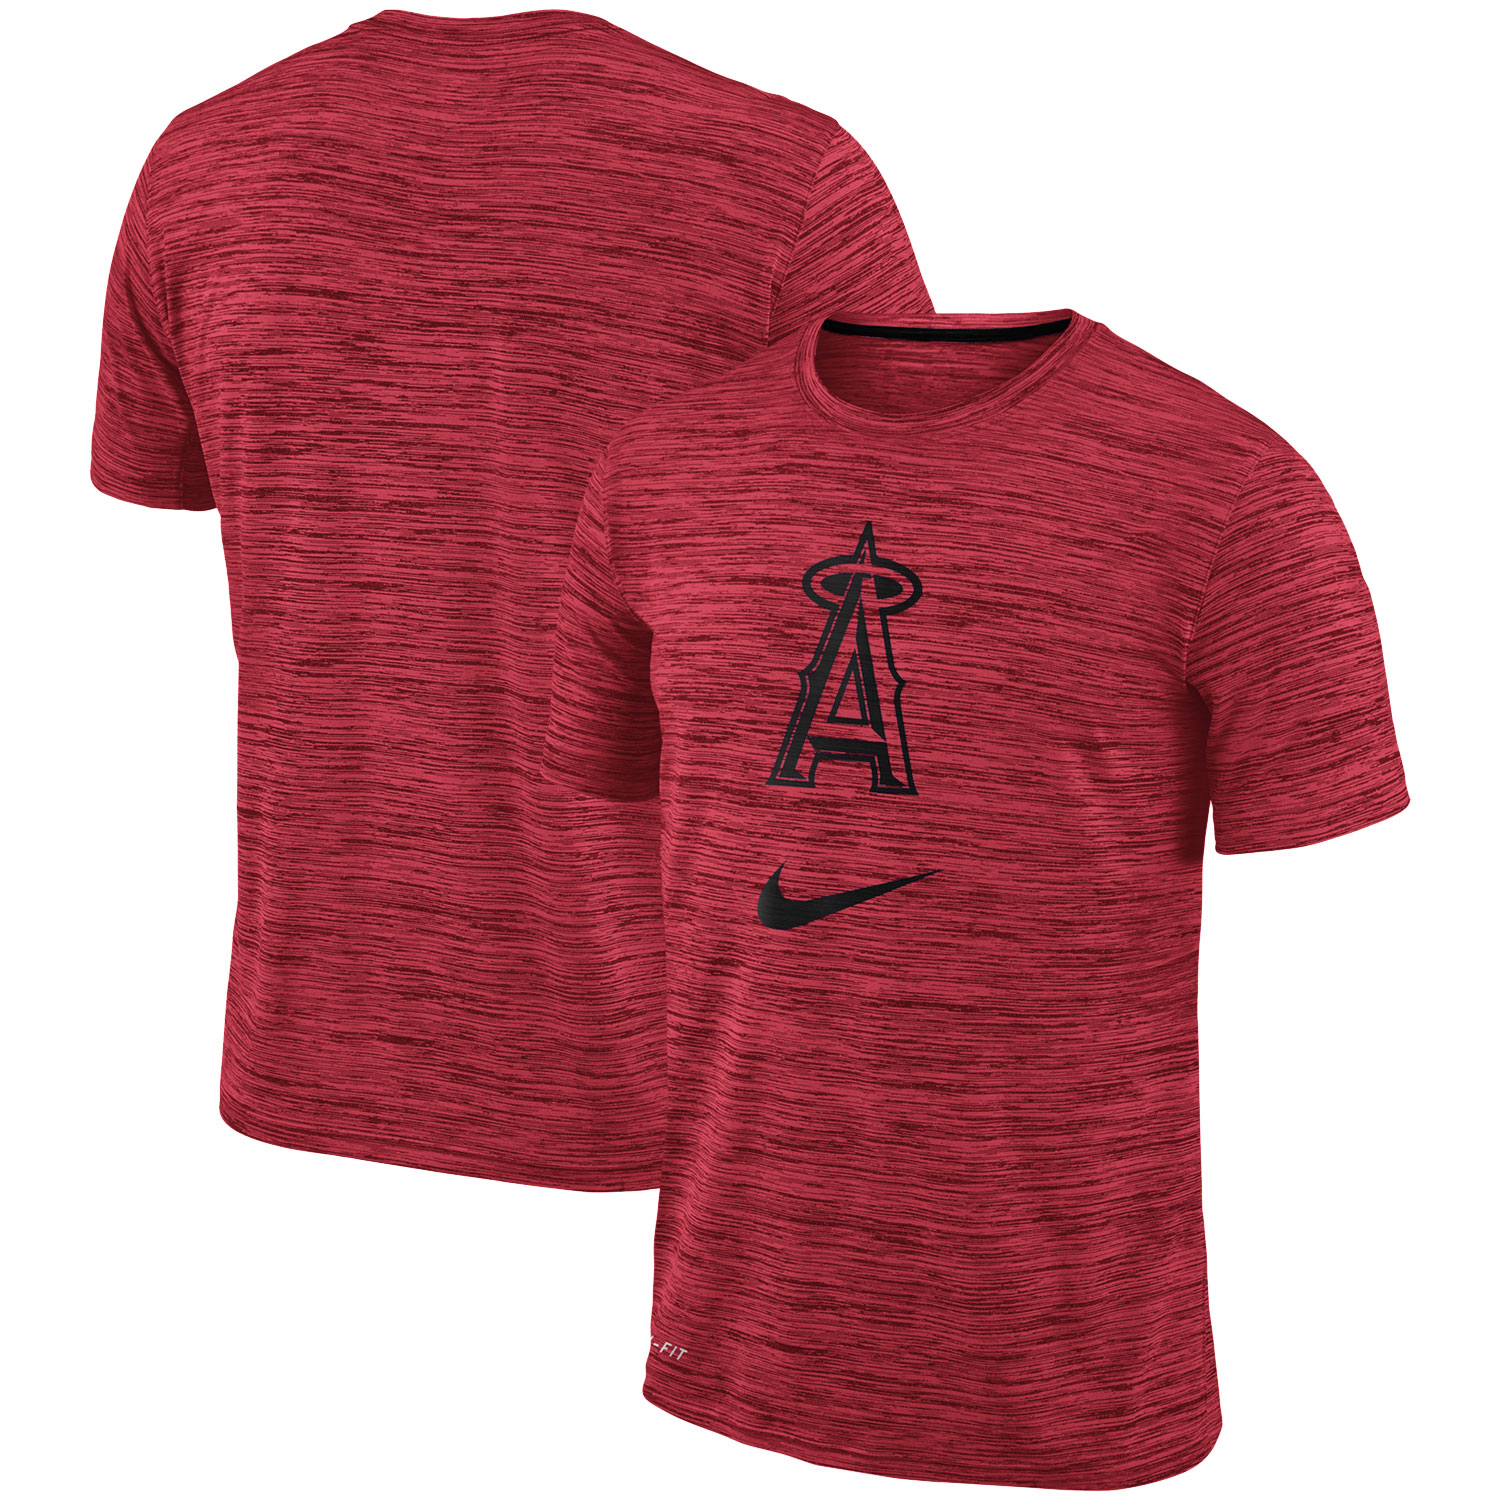 Los Angeles Angels Nike Velocity Performance T-Shirt - Red